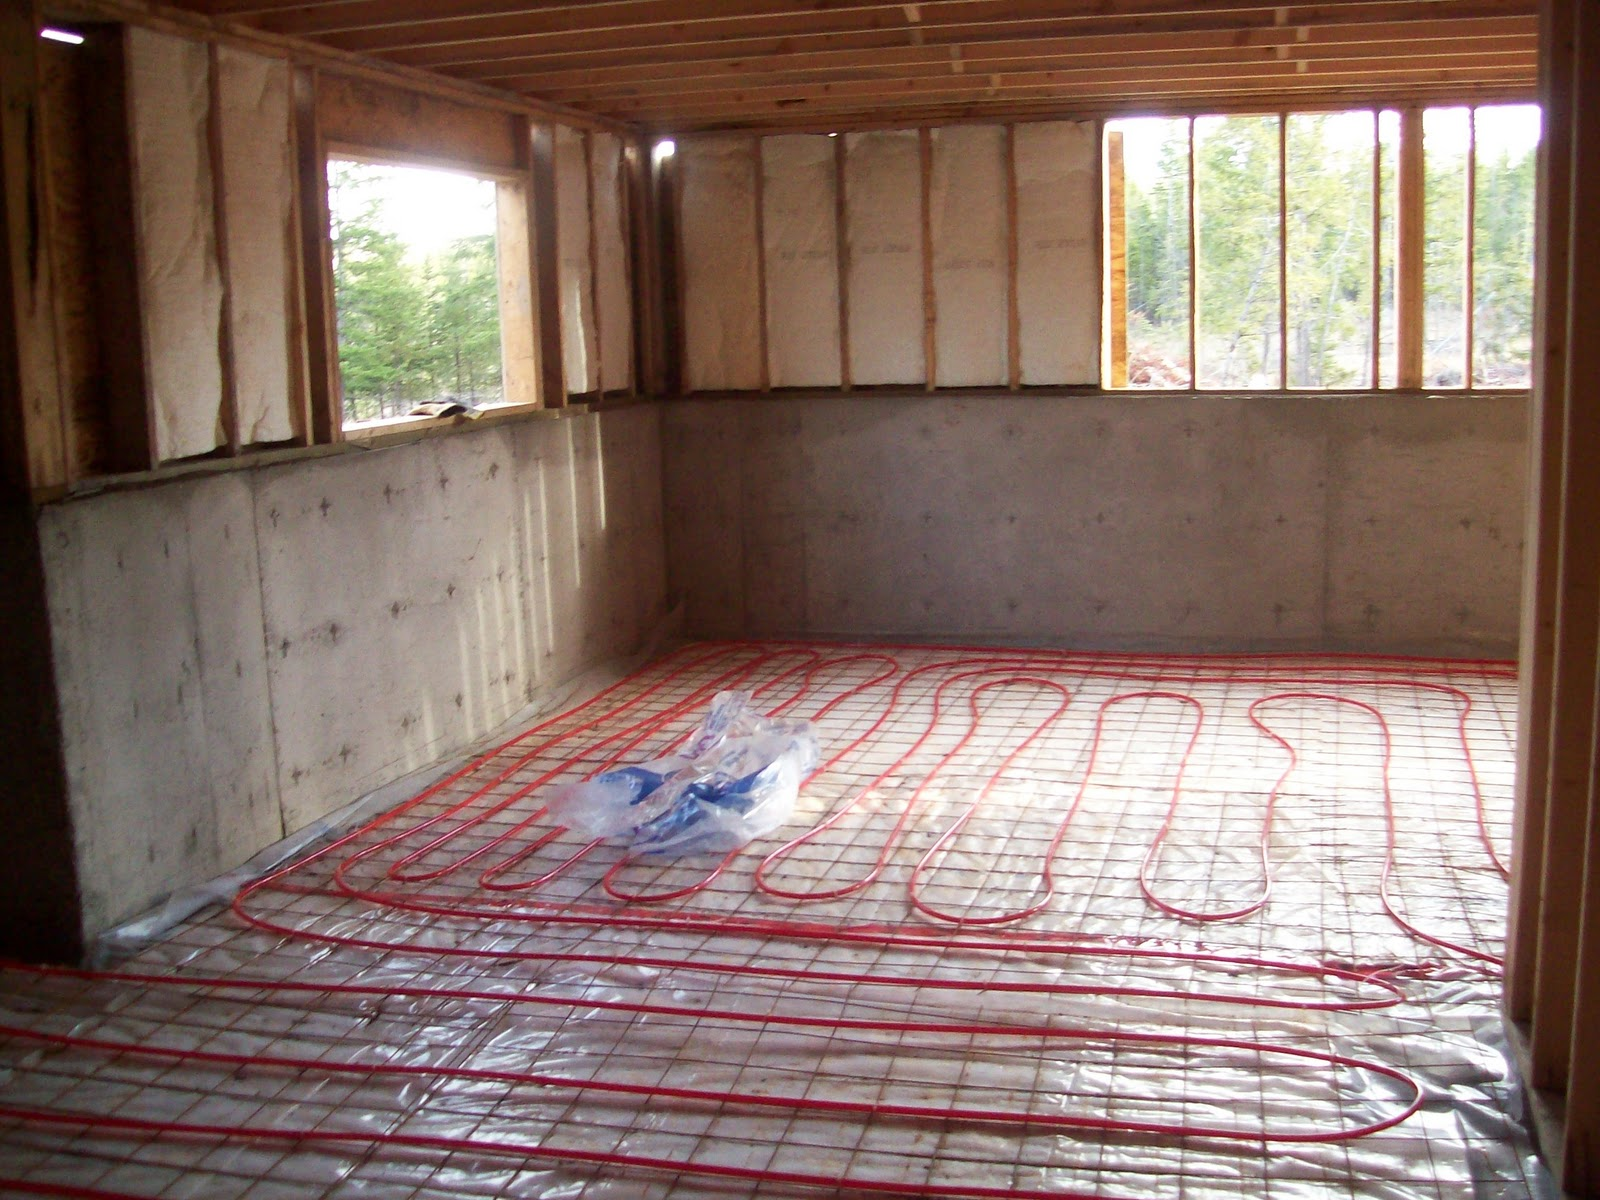 And then there were ten radiant heat basement floors and Radiant floors